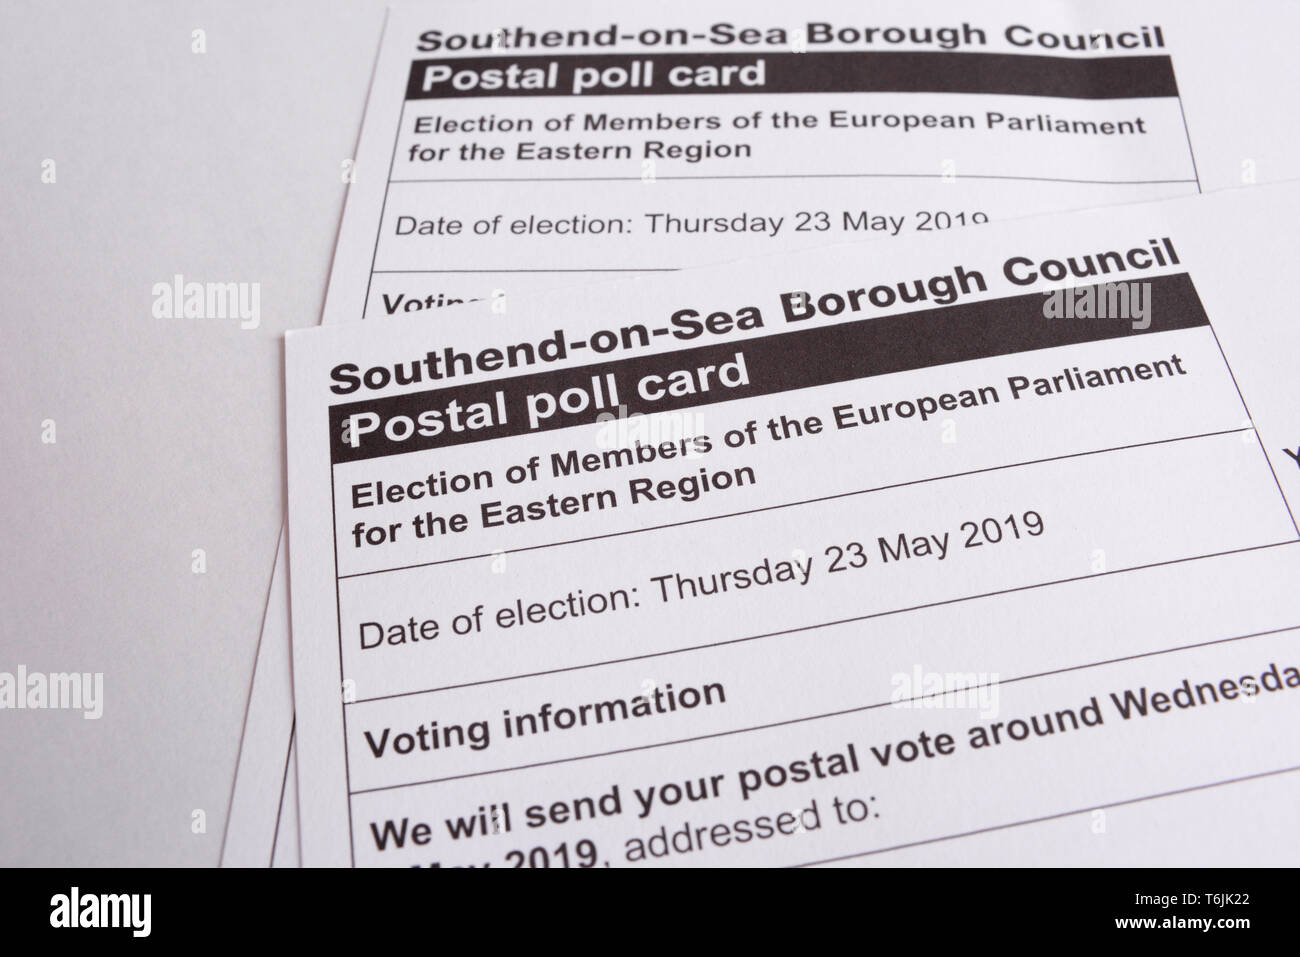 European Parliament election, 2019, postal polling card. Election of Members of the European Parliament for the Eastern Region. Southend on Sea, Essex - Stock Image